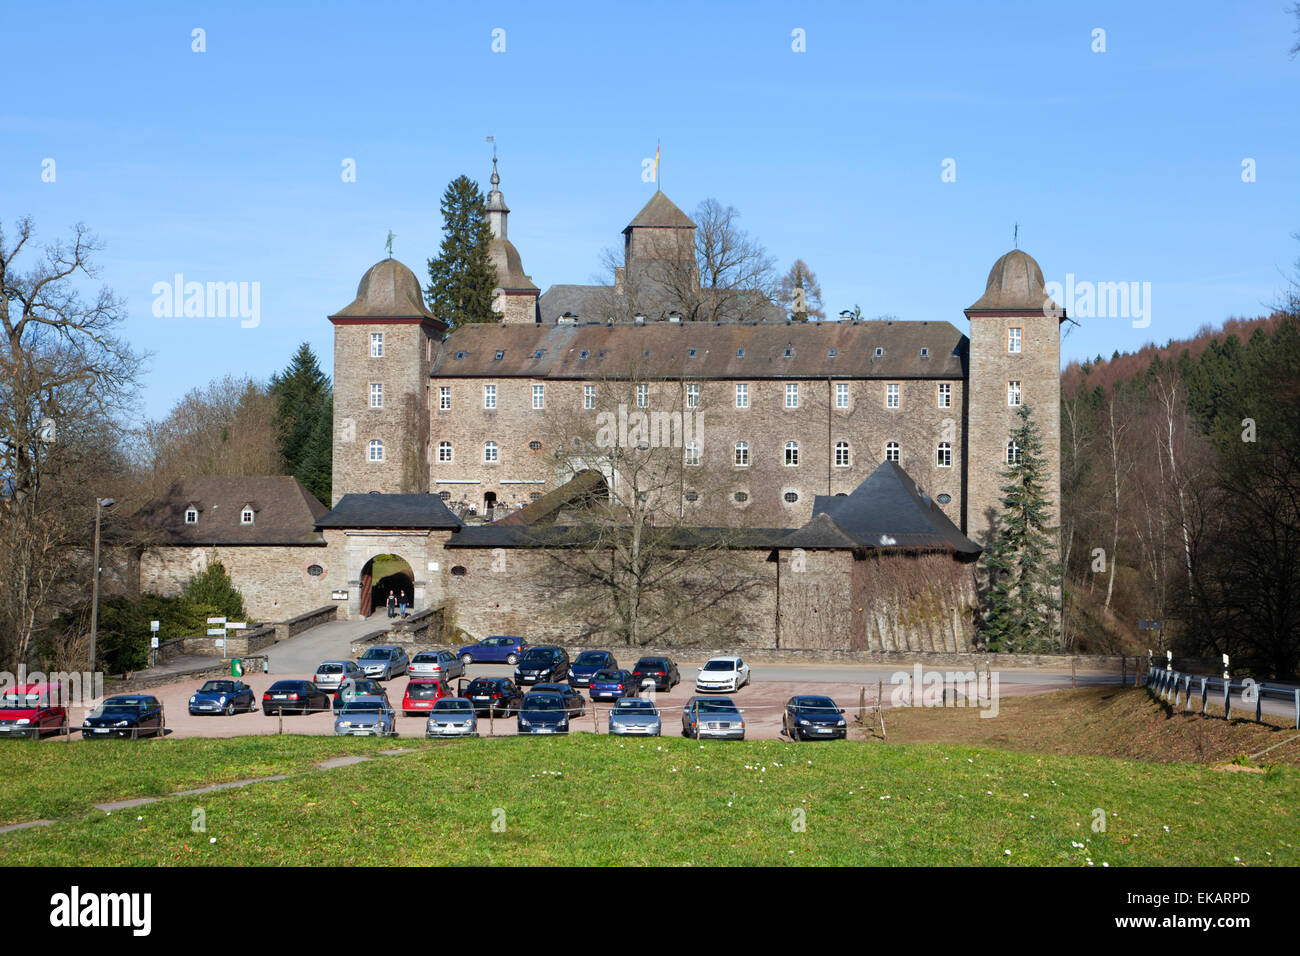 Burg Schnellenberg Castle, Hanseatic City of Attendorn, Sauerland region, North Rhine-Westphalia, Germany, Europe - Stock Image